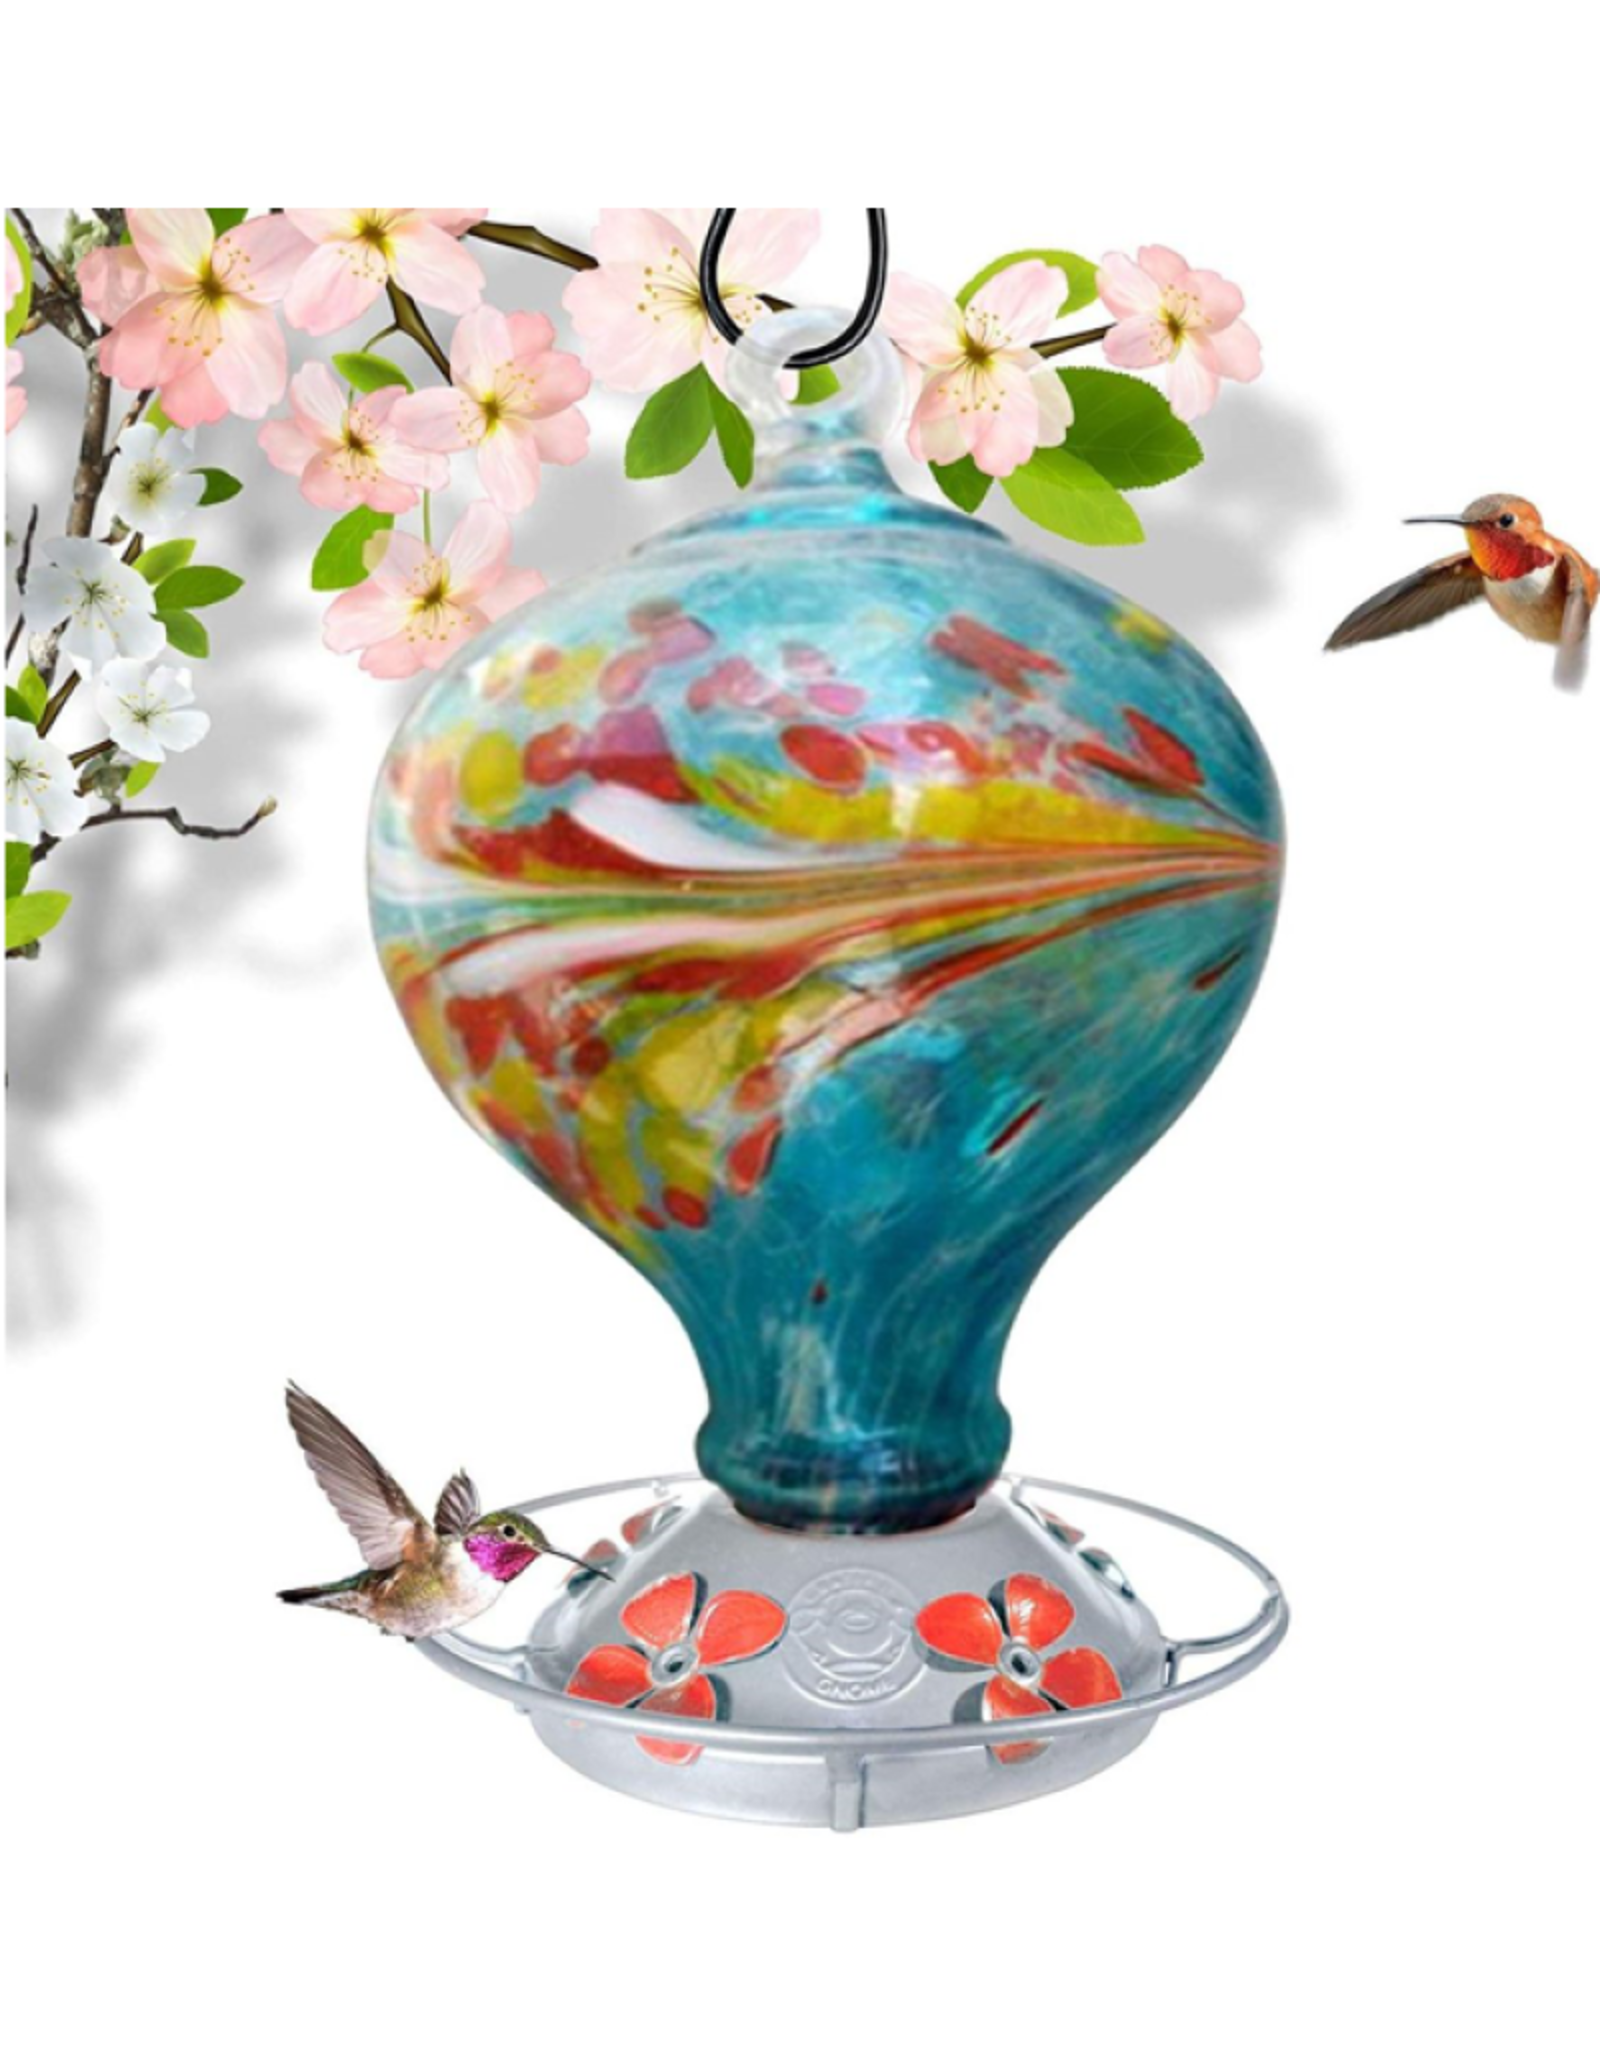 Hummingbird Feeder - Spring Breeze